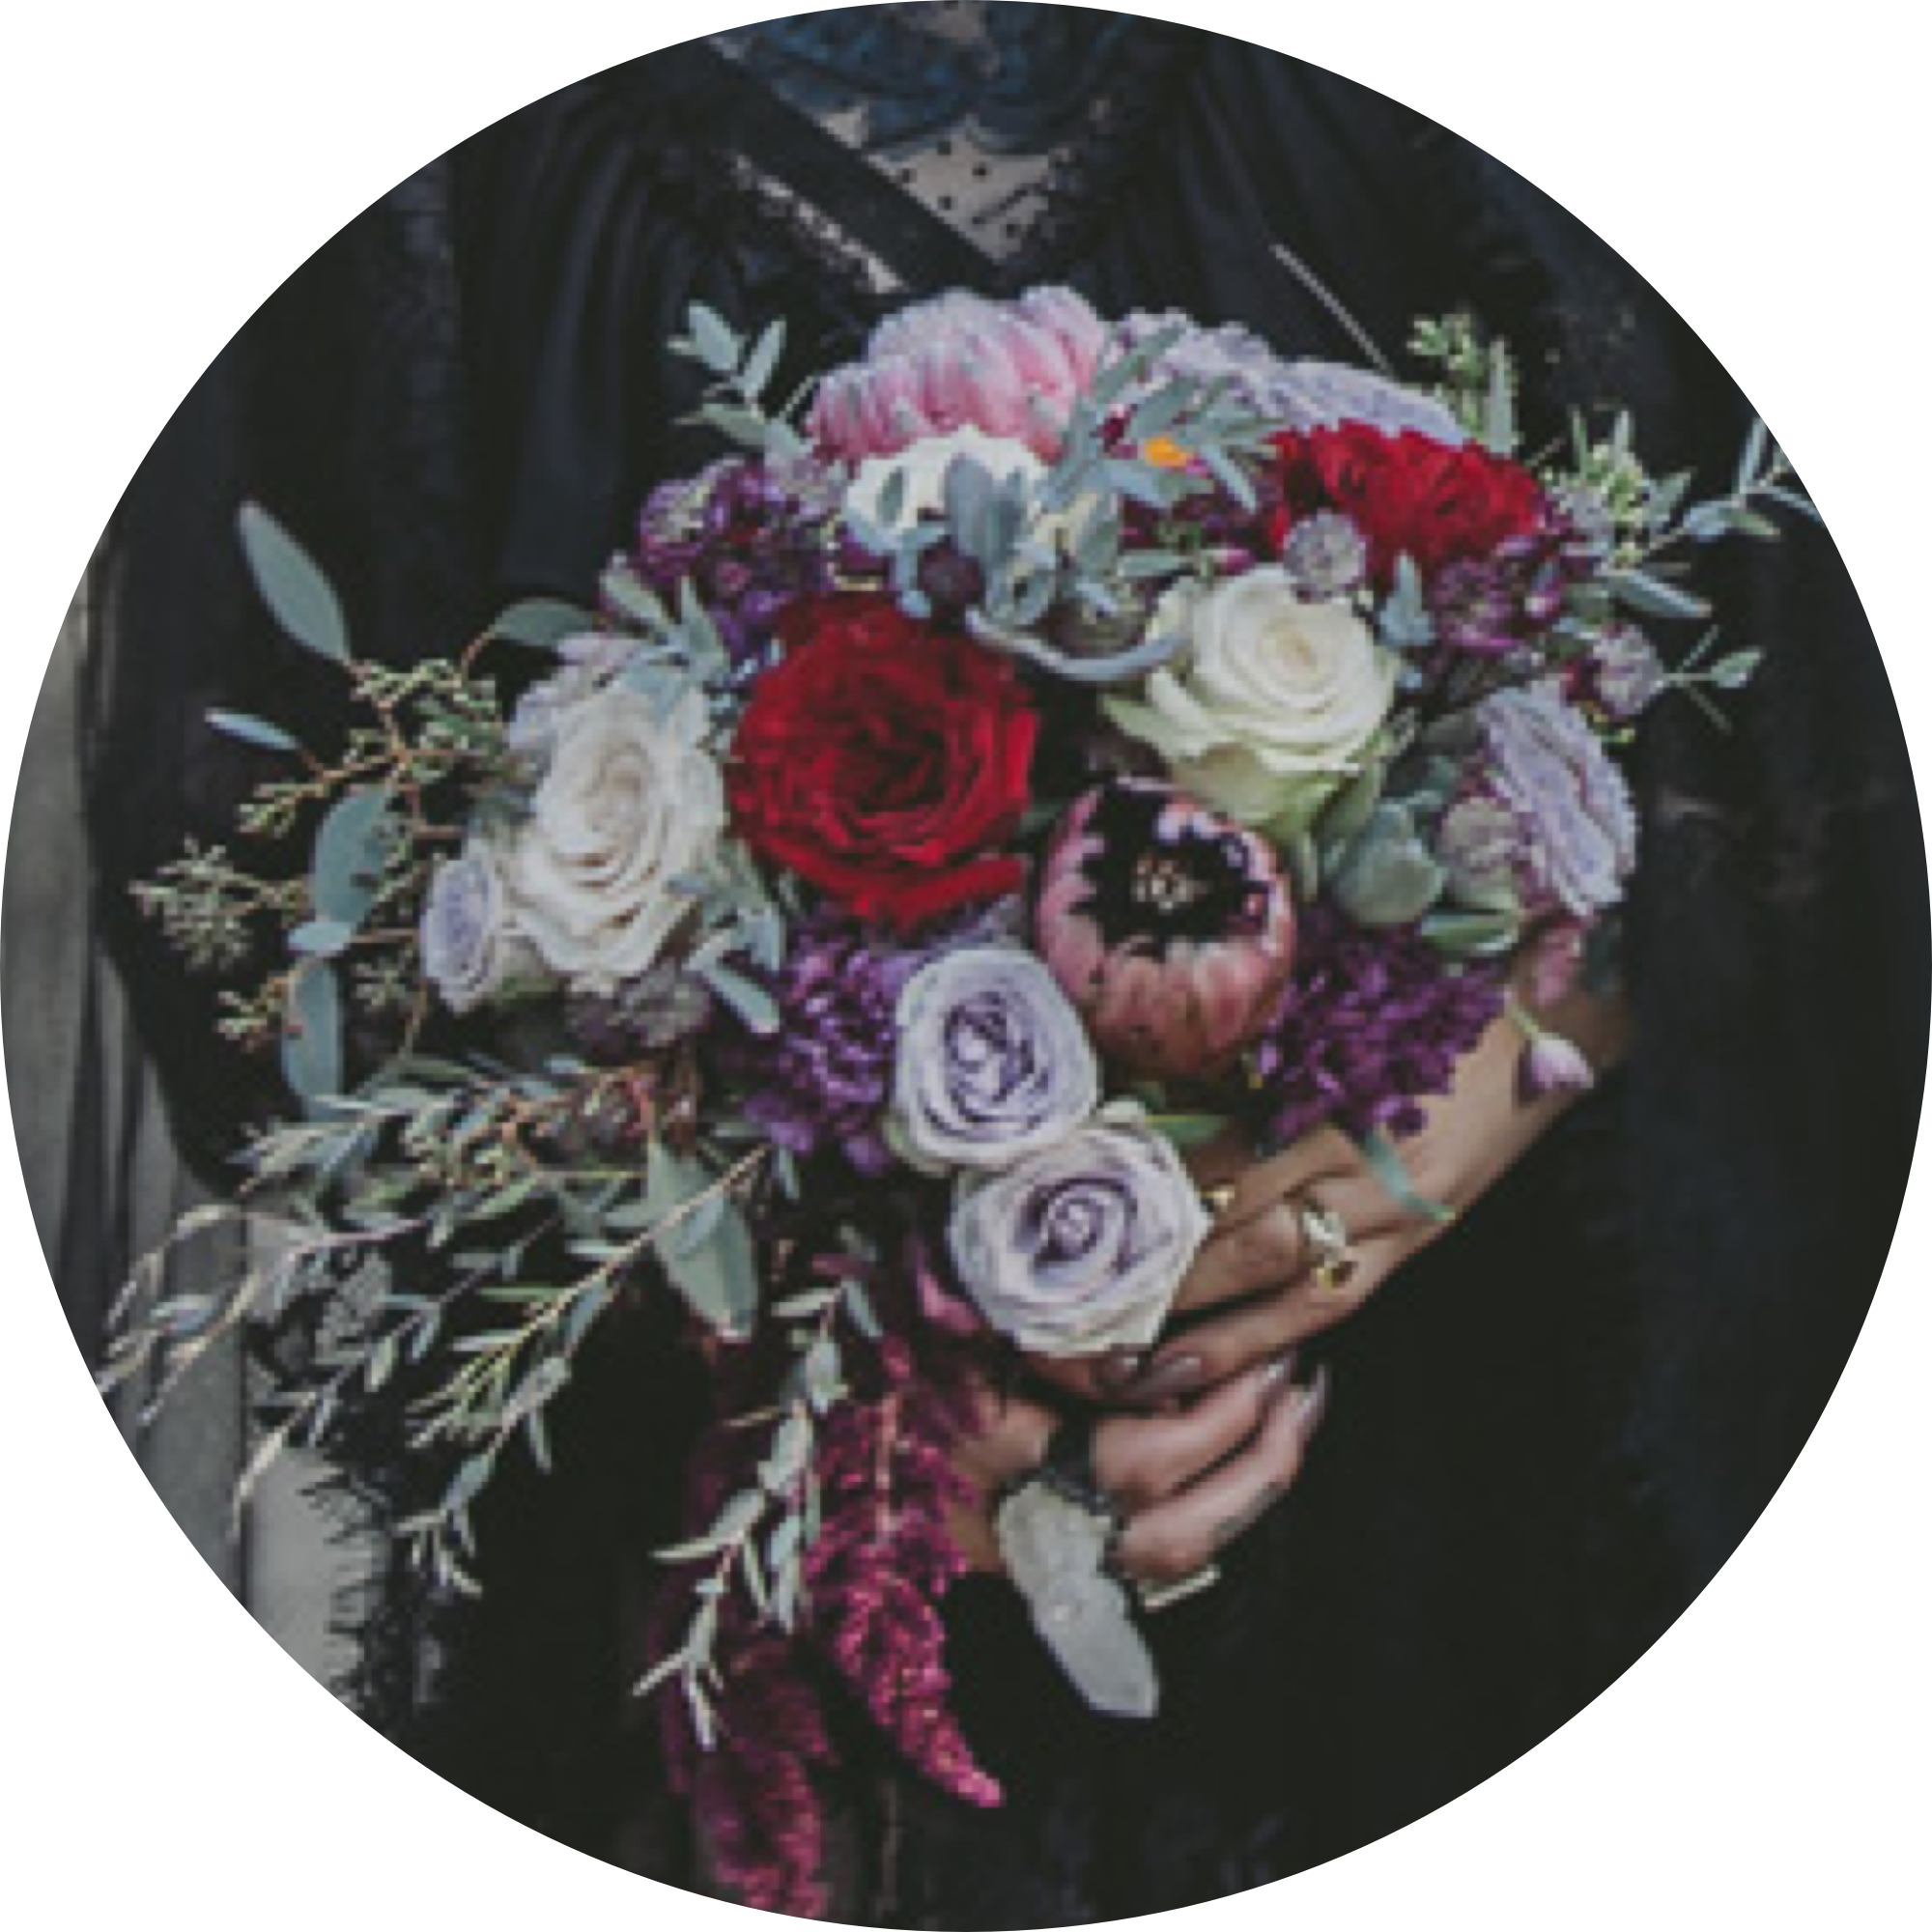 """""""I'd recommend her for any event."""" - Her work is amazing! My fiancé and I hired her to recently do our wedding florals and they were gorgeous. Sophie is extremely attentive, kind, down to earth and is more than accommodating. I'd recommend her for any event.- Vanessa + Vincent"""